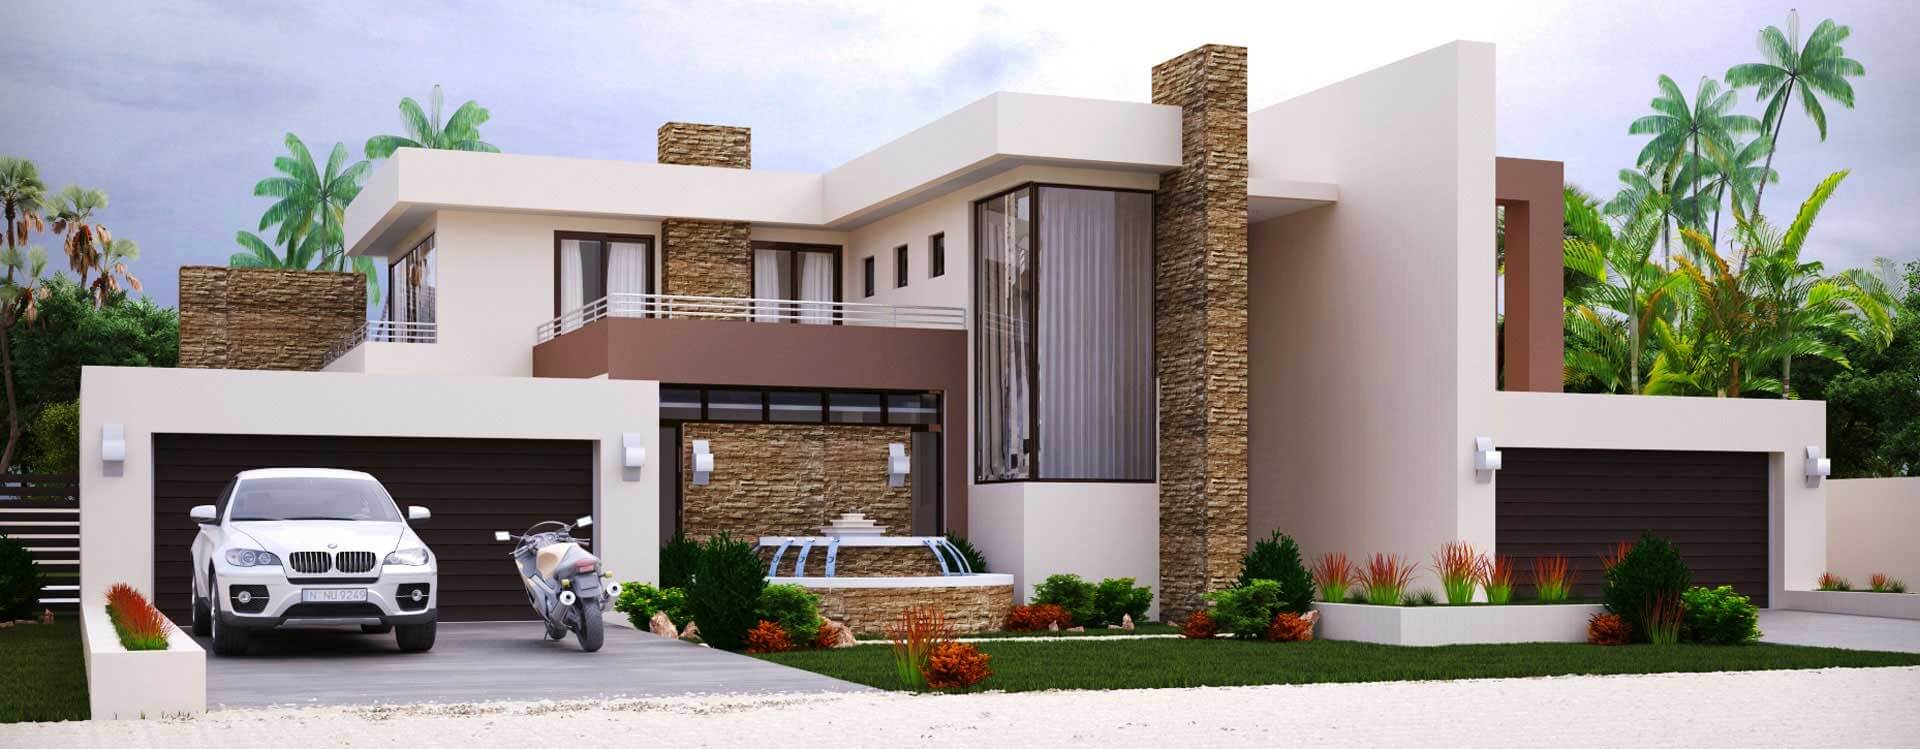 Modern Style House Plan, 4 Bedroom, Double Storey Floor Plans, Home Design, Part 76